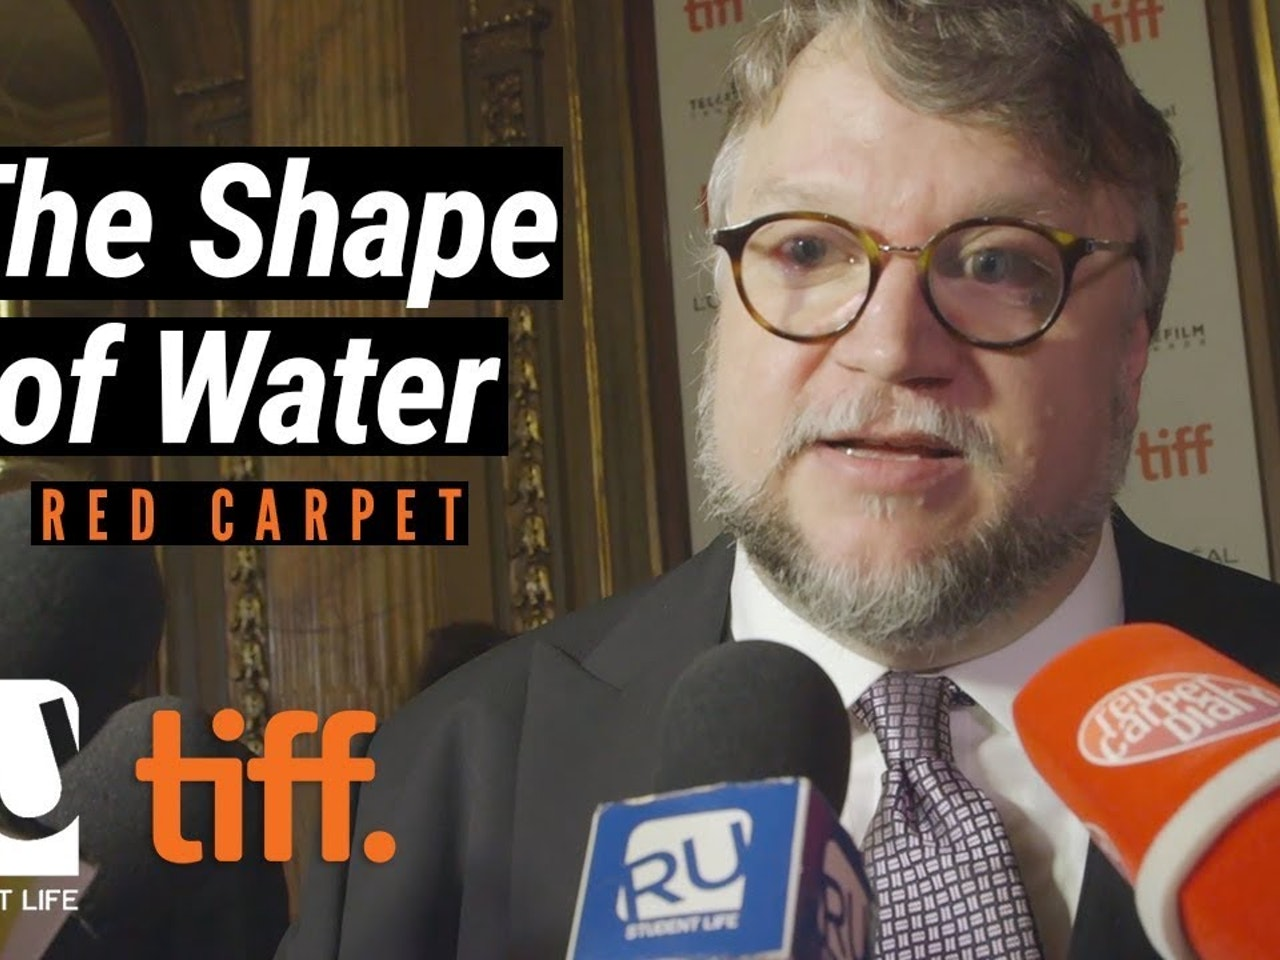 Golden Globes Best Director Guillermo del Toro Interview at TIFF17 'The Shape of Water' Premiere